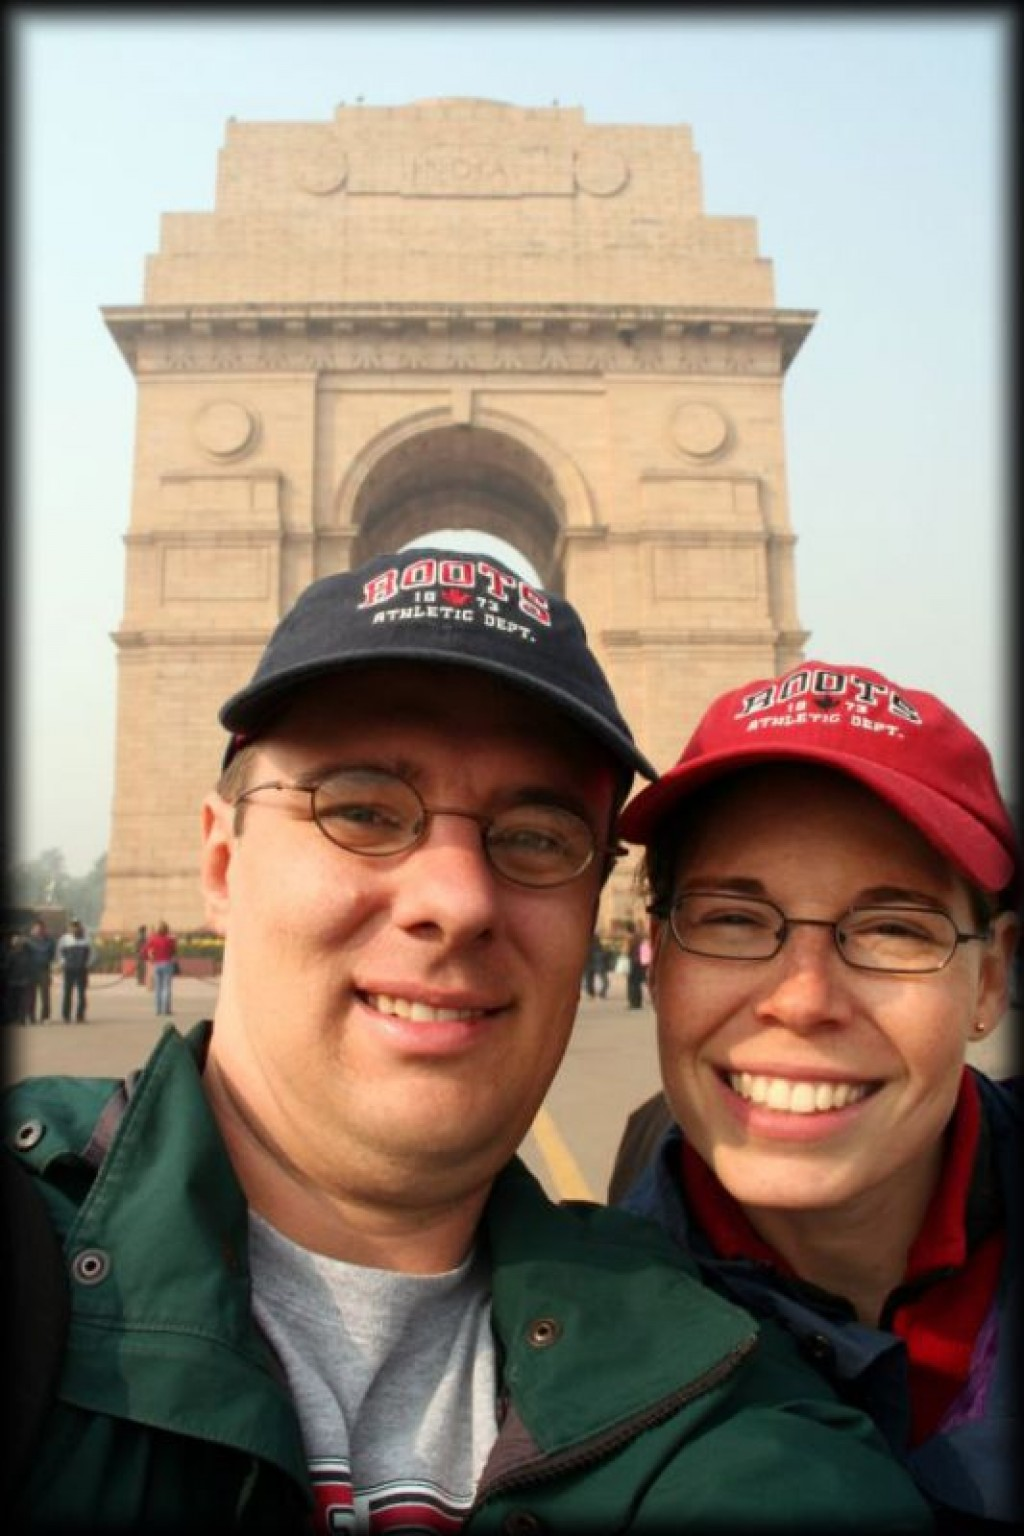 We visited the India Gate in the center of town.